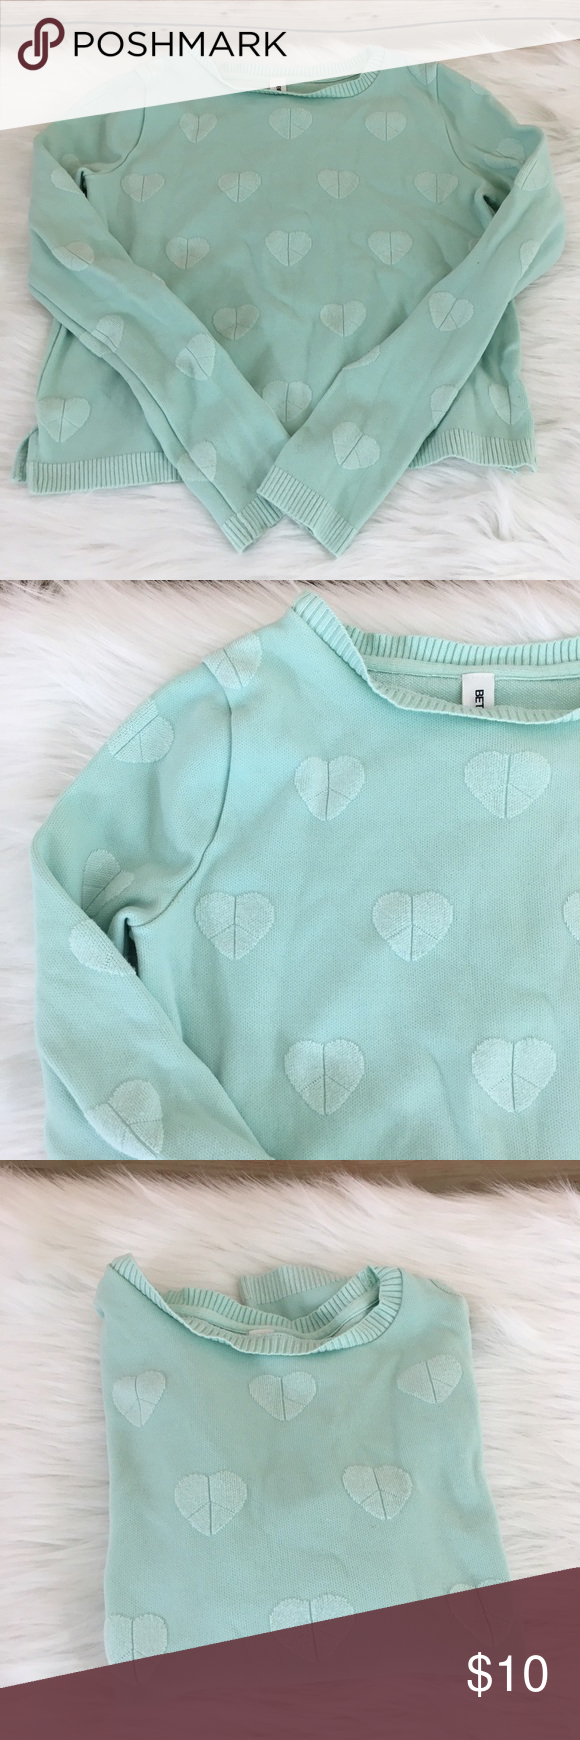 Bethany Mota Mint Heart Girls Sweater Preloved Bethany Mota Peace Sign With Color On Inside